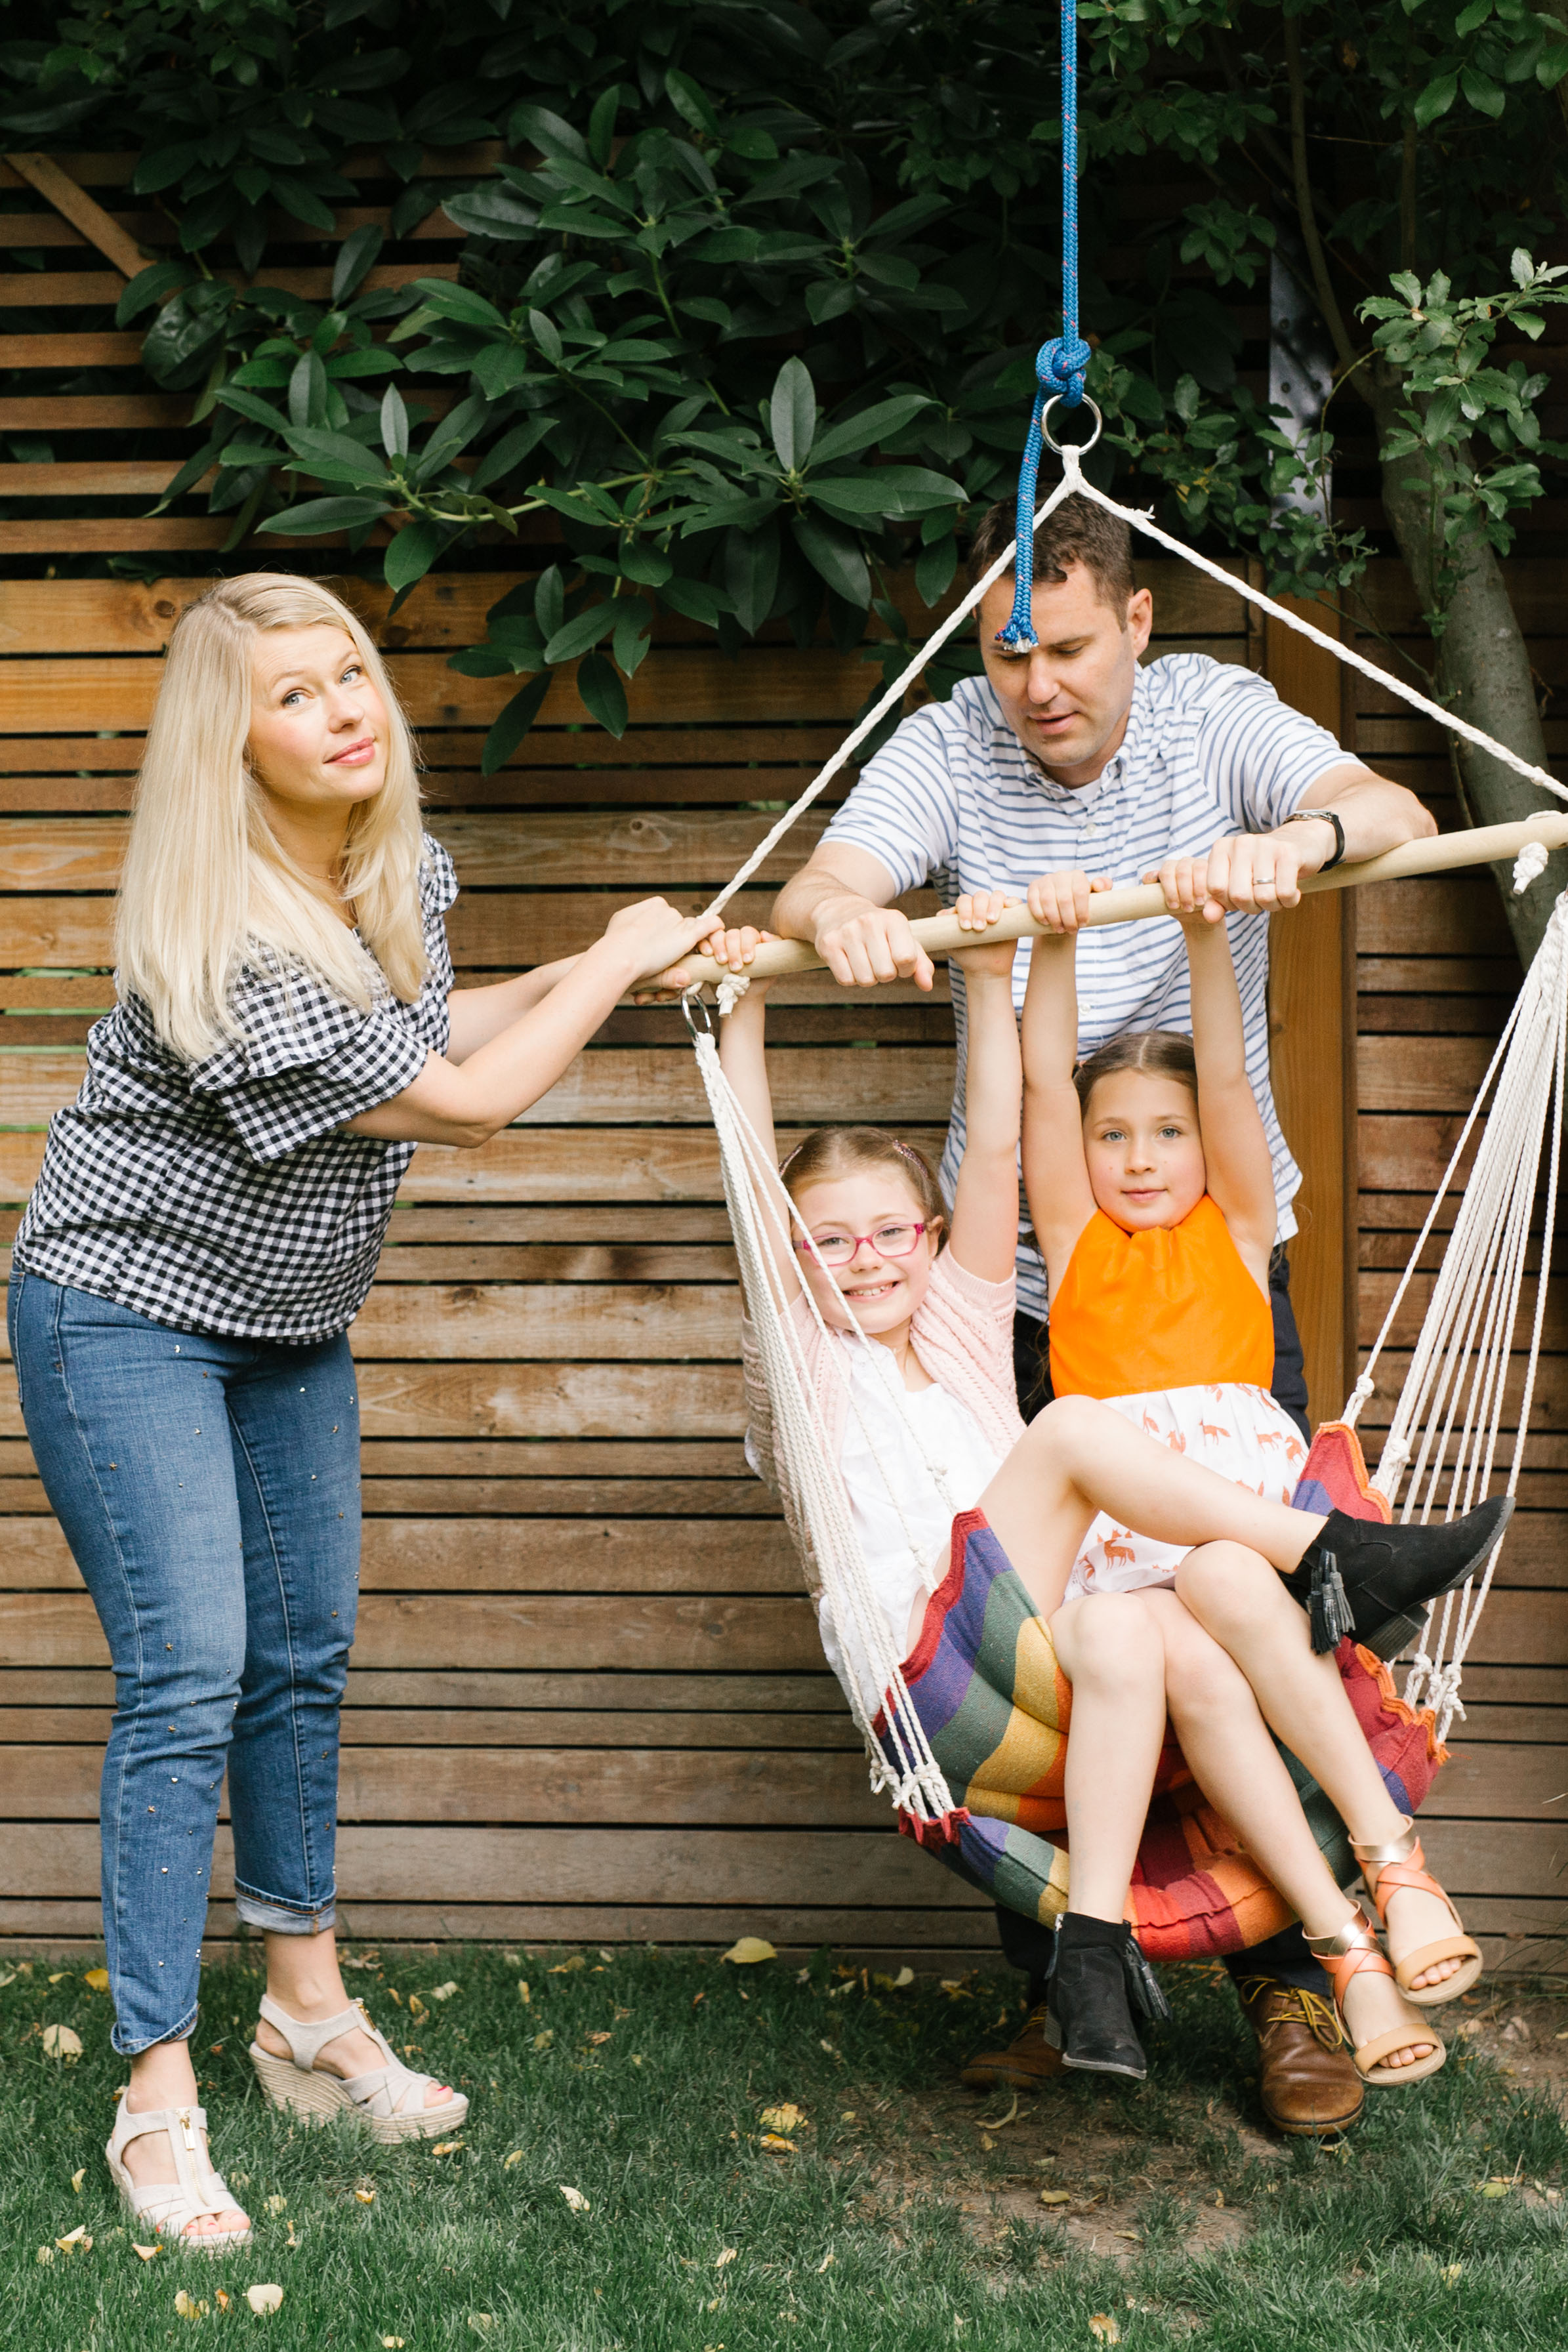 a Chelsea Macor Photography Seattle Eastside Family Photographer Natural Light Lifestlye Home and Outdoor Sessions Kids and Newborn-3.jpg